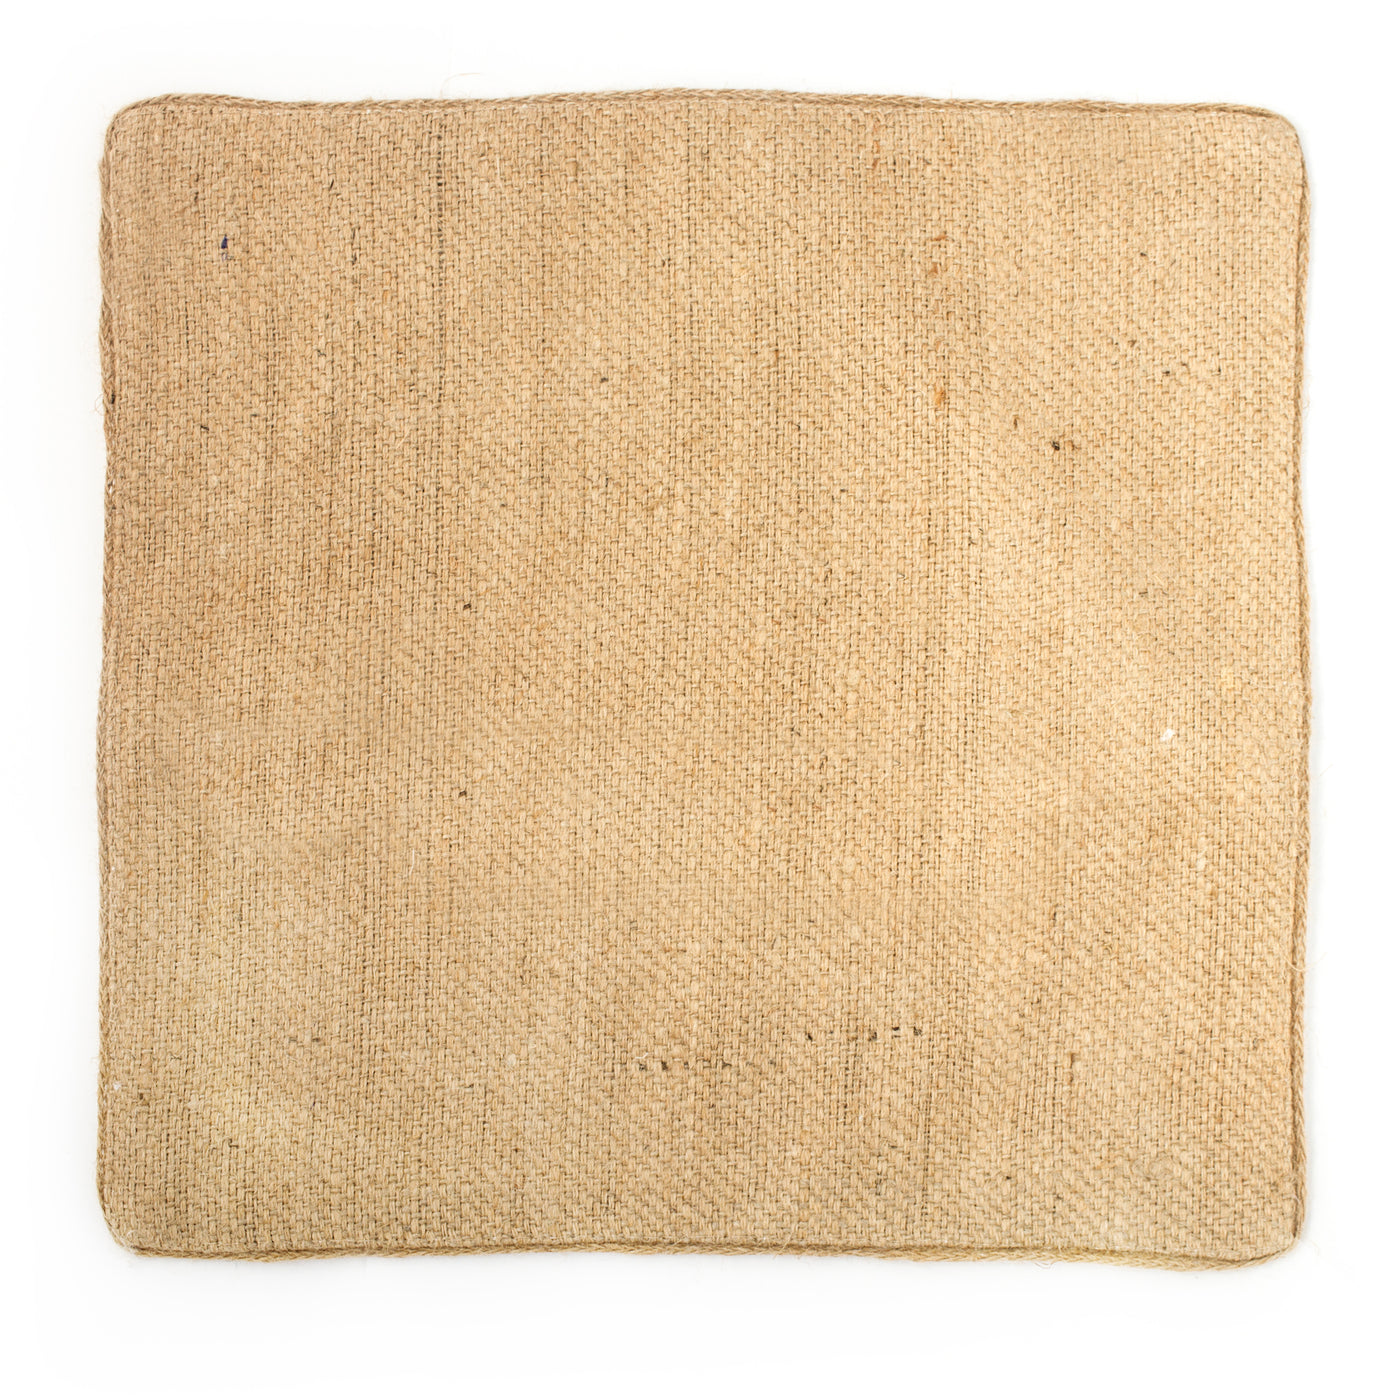 placemat | woven jute l set of 4